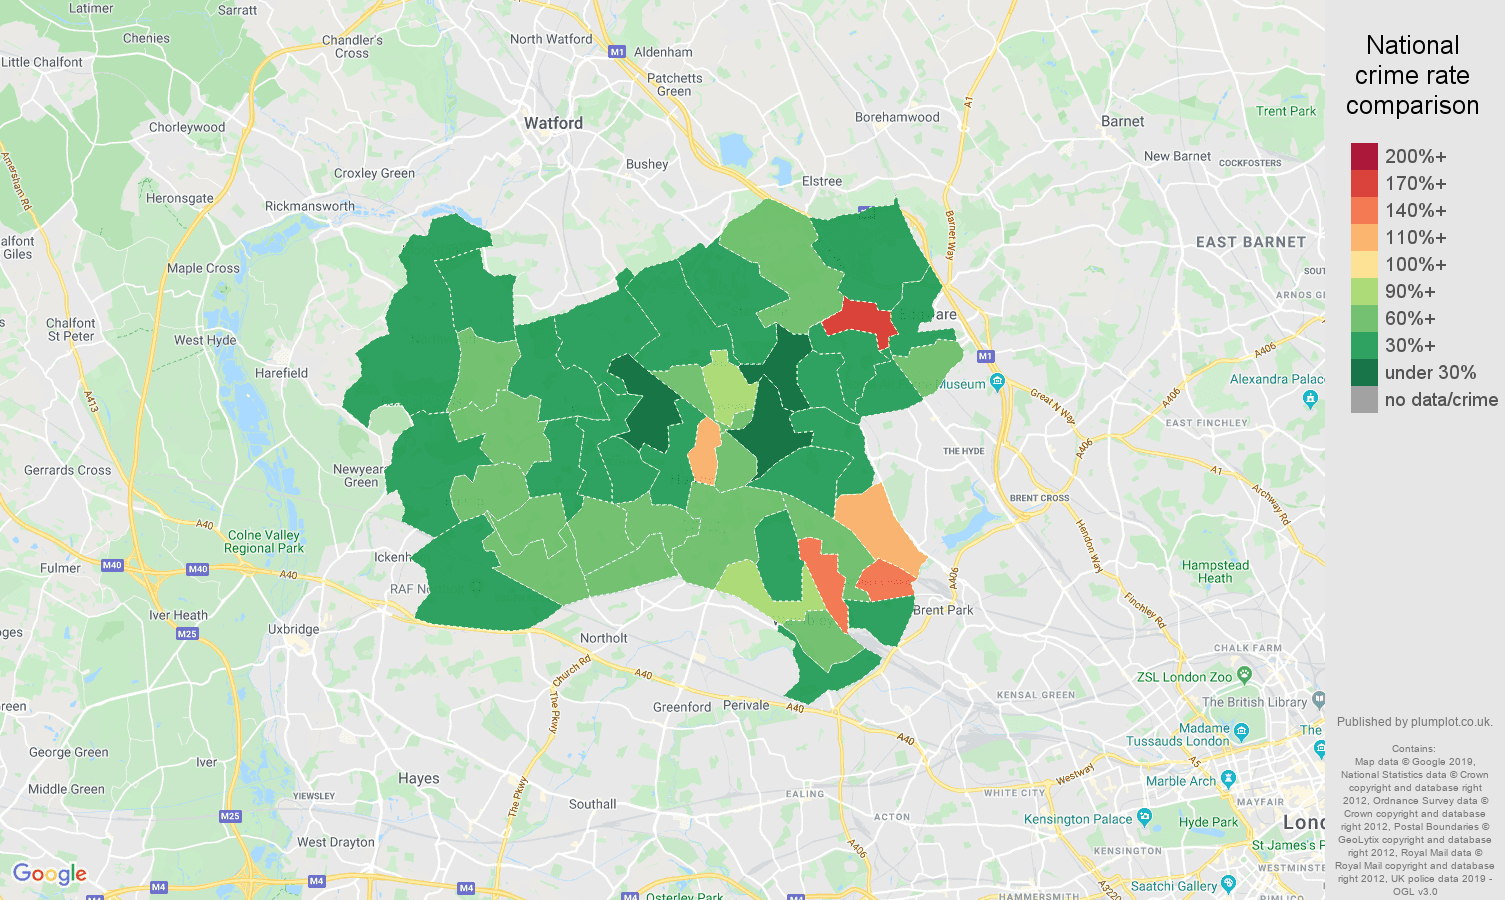 Harrow public order crime rate comparison map